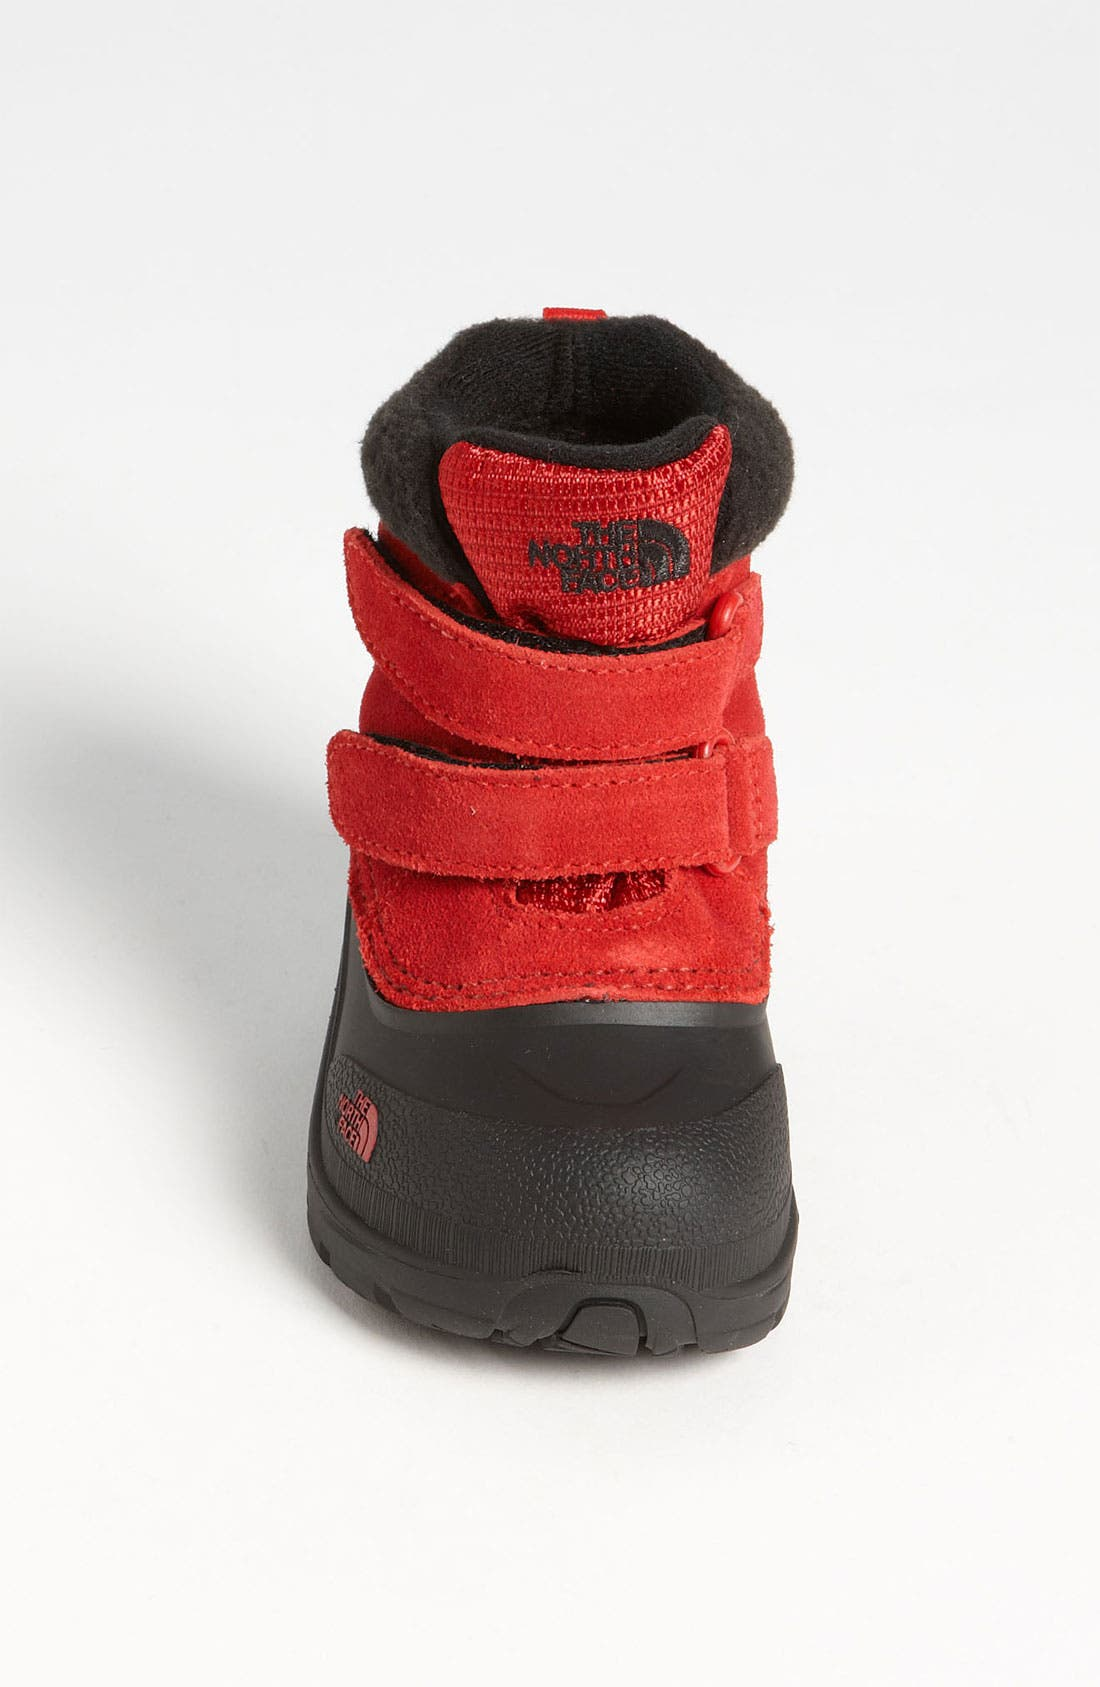 Alternate Image 3  - The North Face 'Chilkat' Boots (Walker & Toddler)